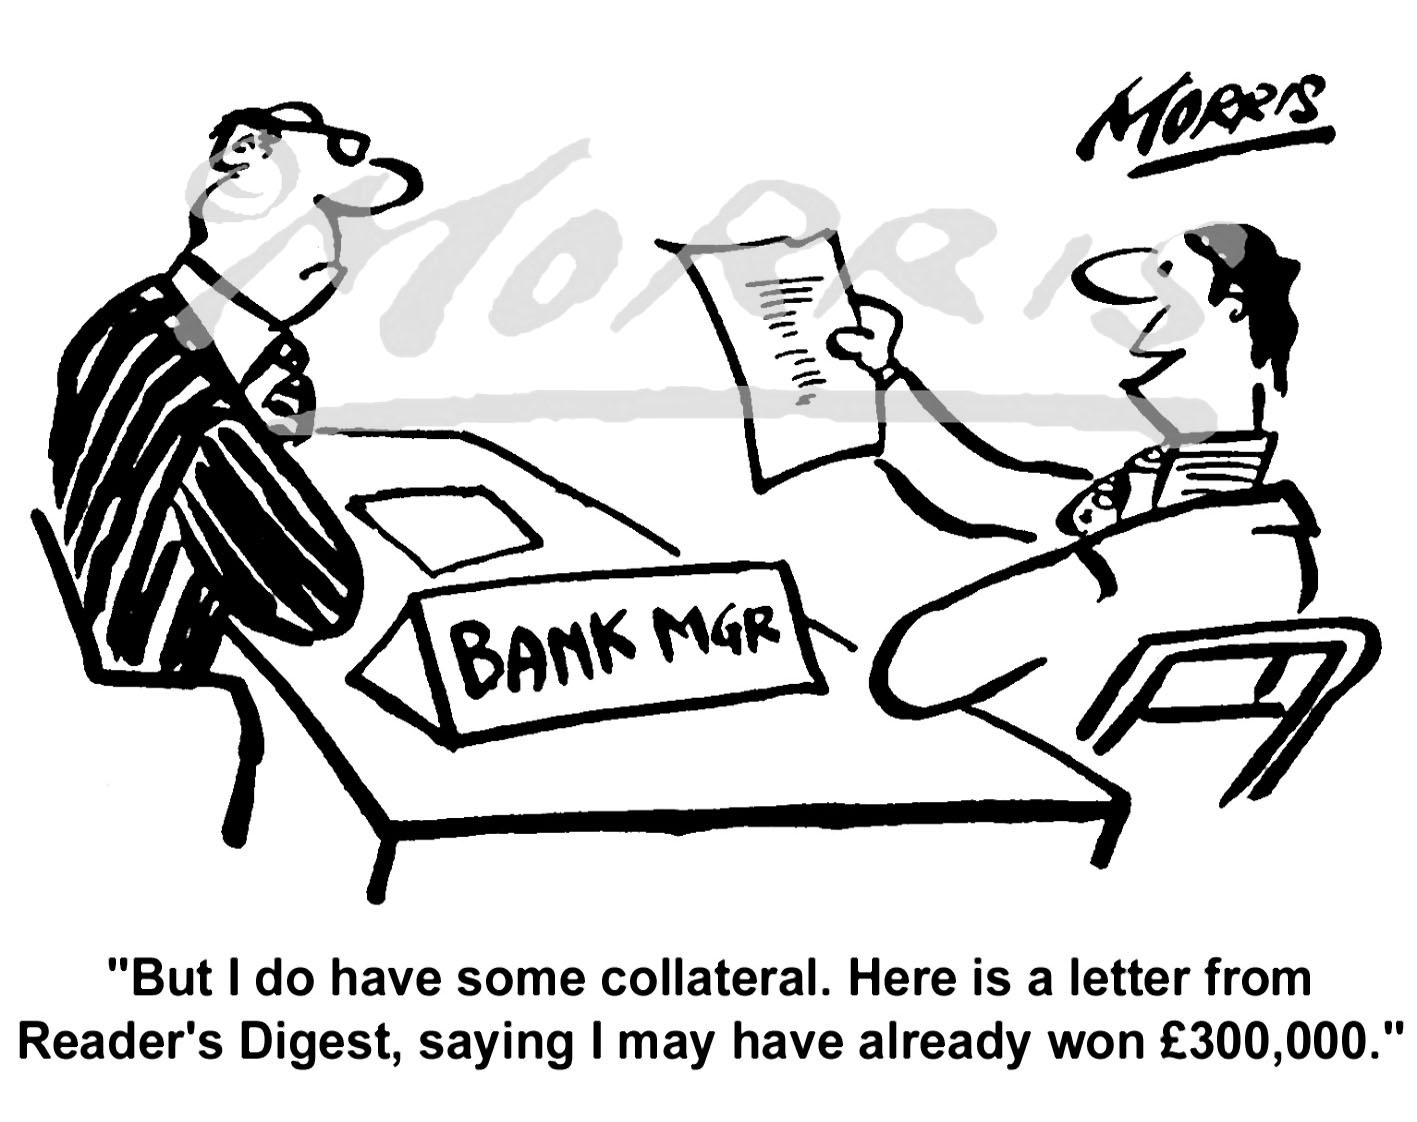 Bank Manager comic business cartoon Ref: 0177bw